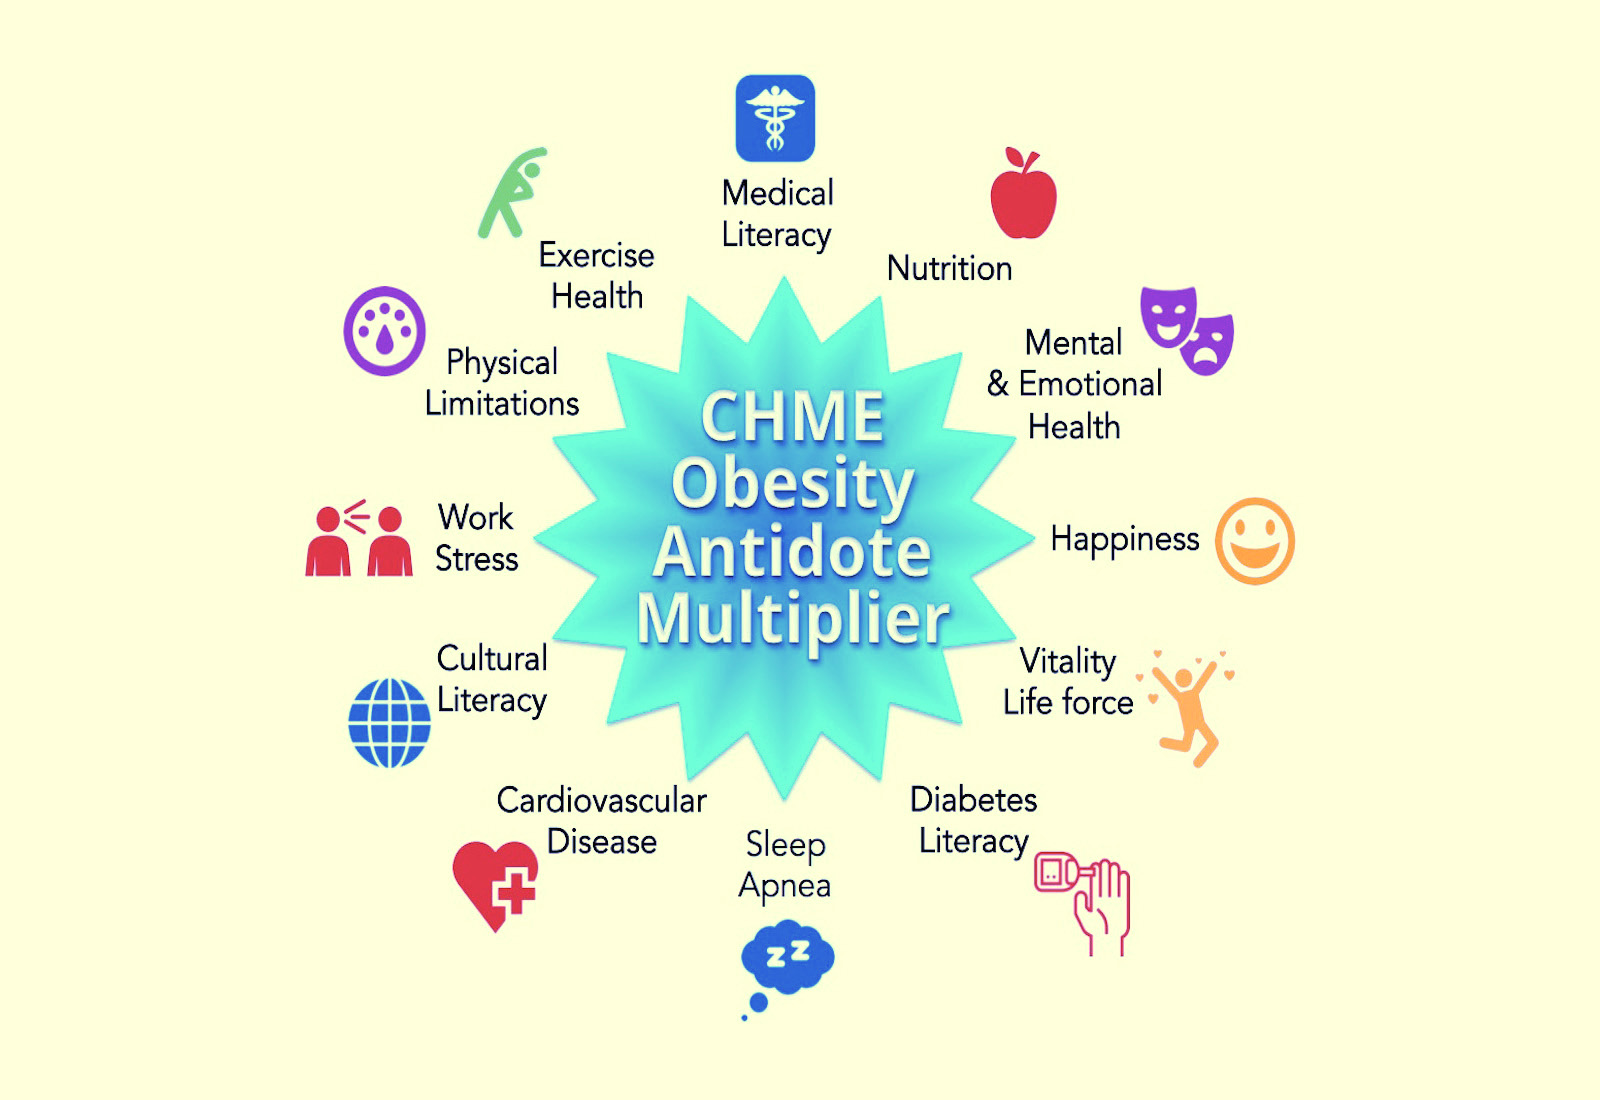 CHME for Obesity